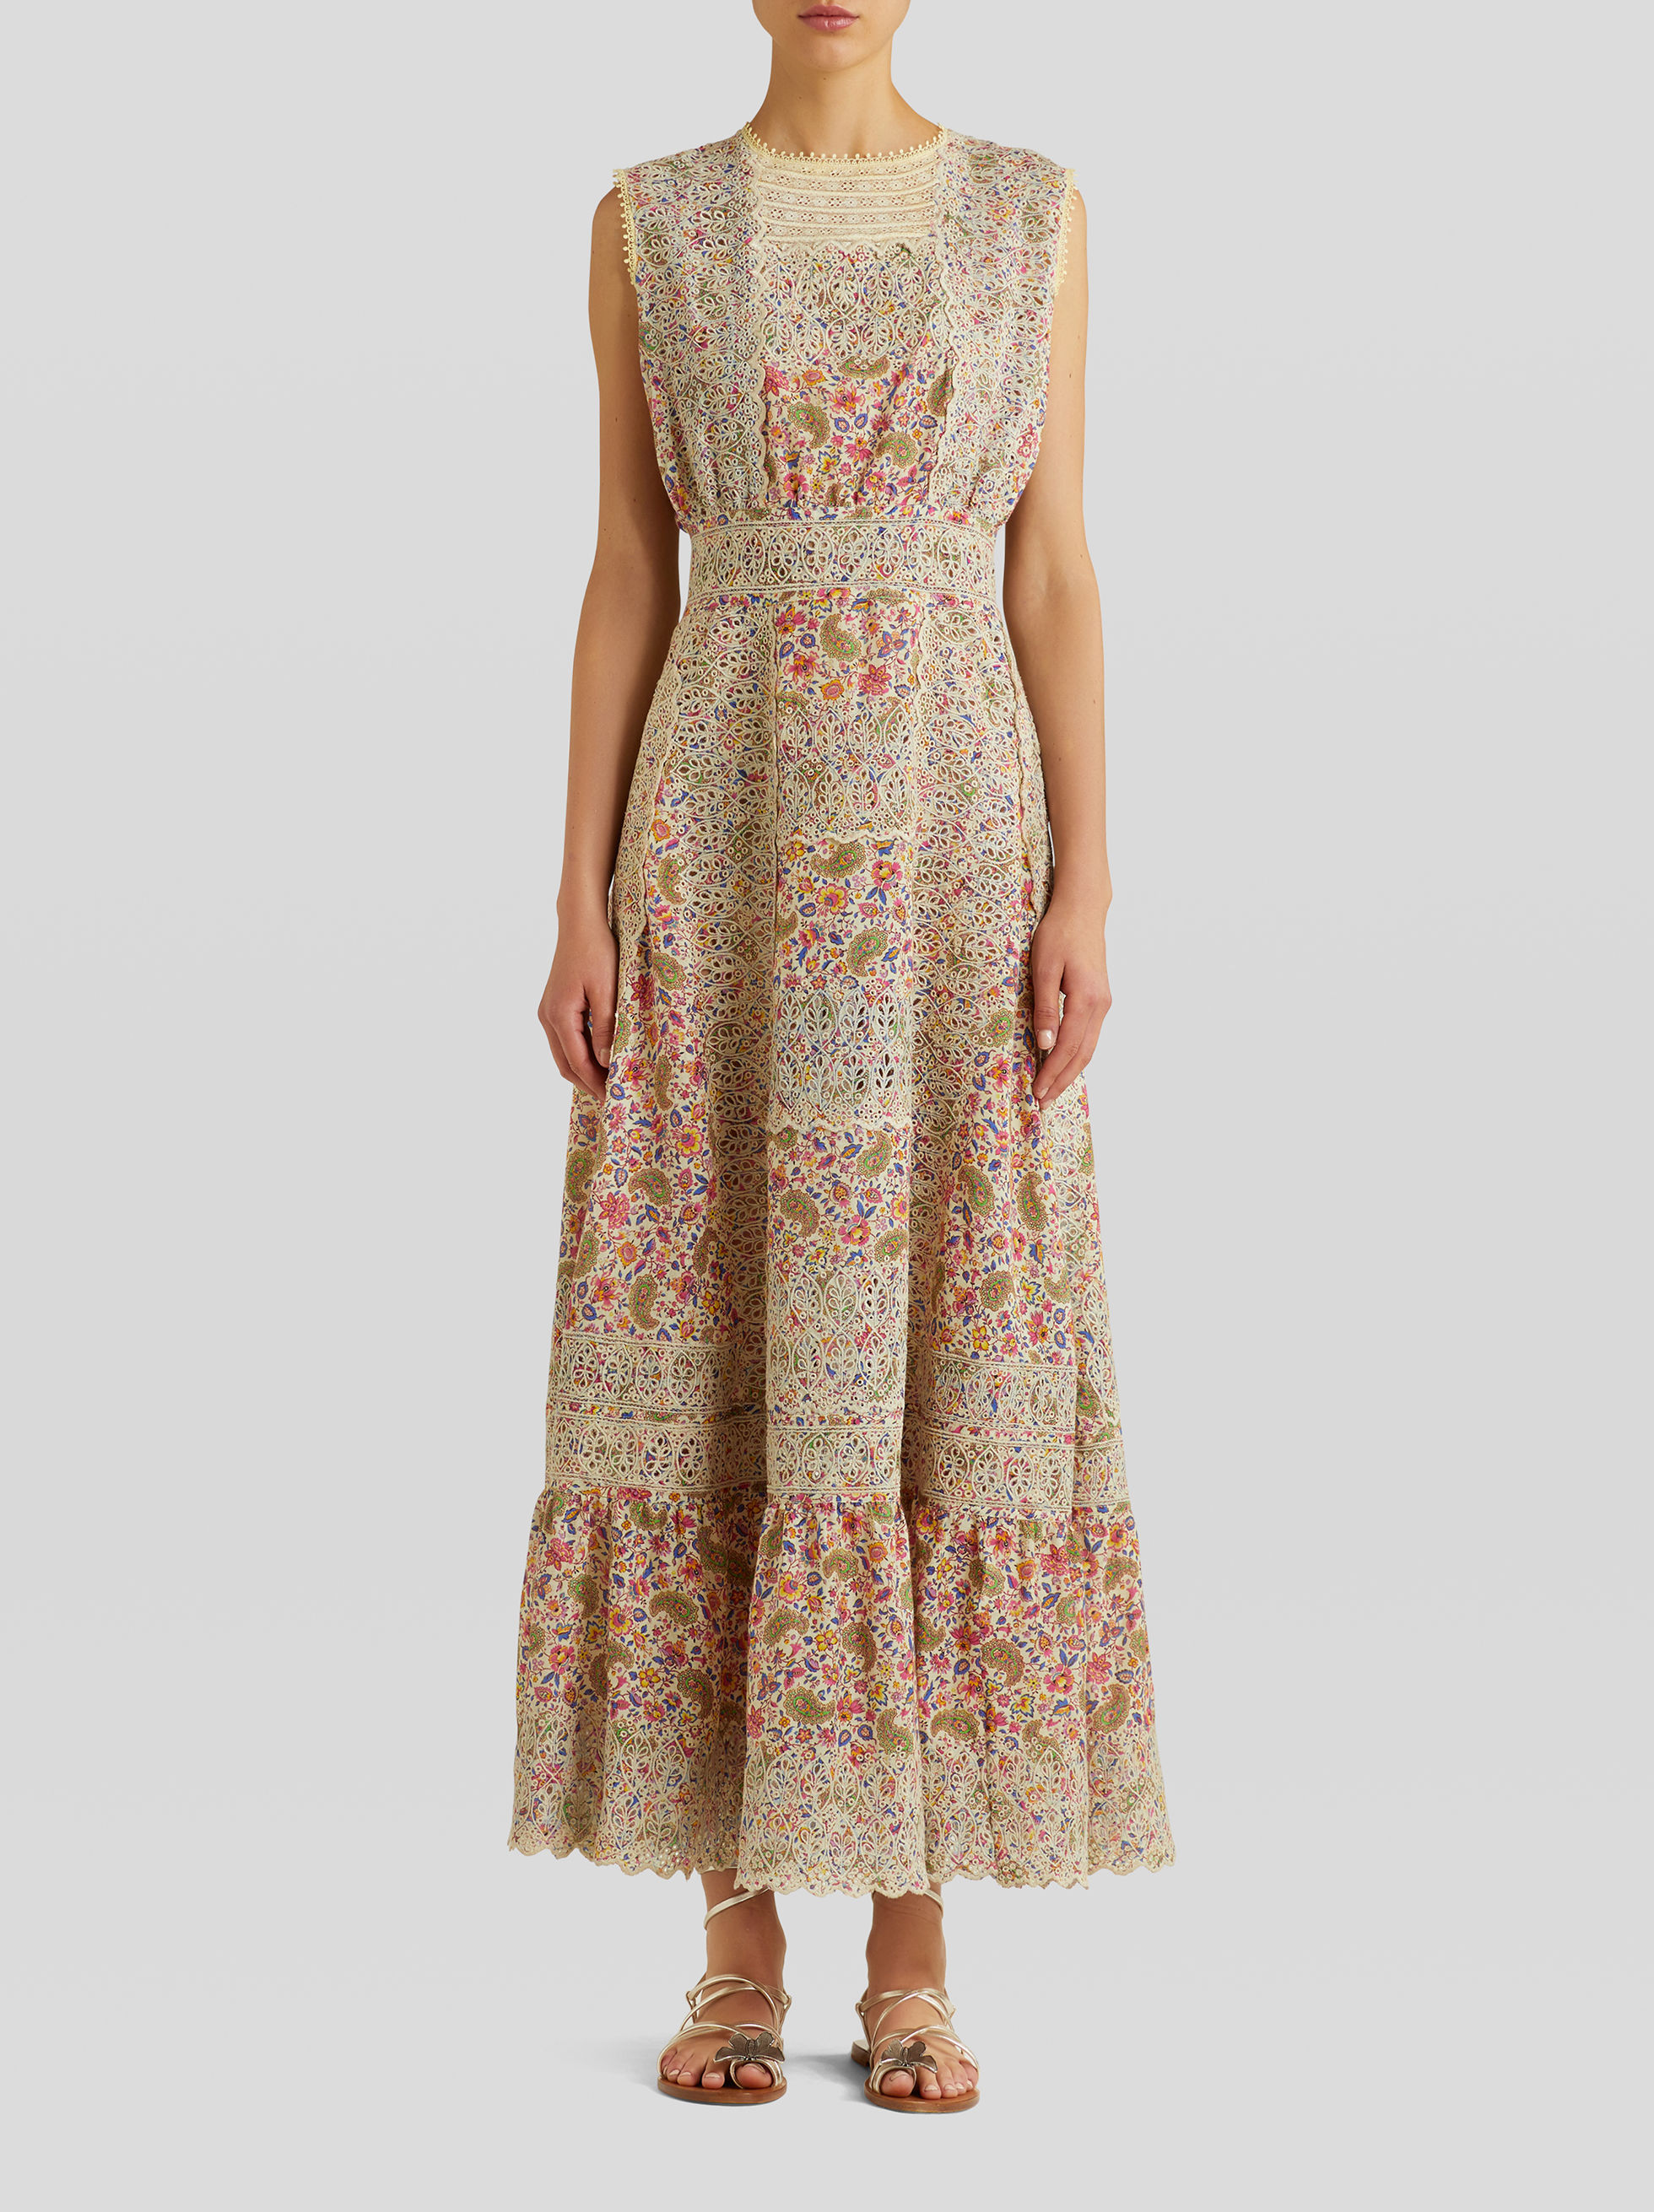 EMBROIDERED PAISLEY DRESS